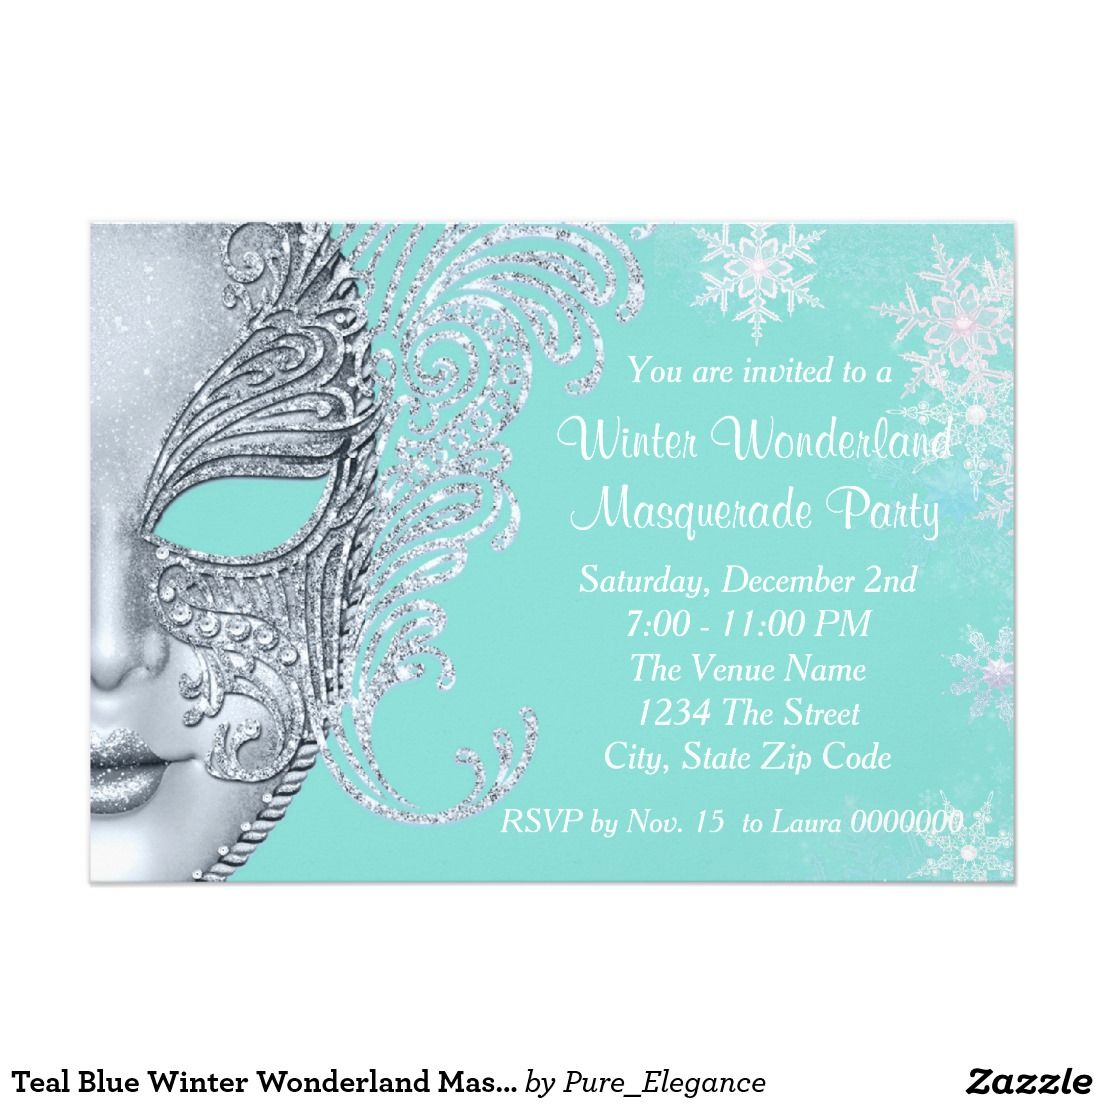 teal blue winter wonderland masquerade party invitation winter